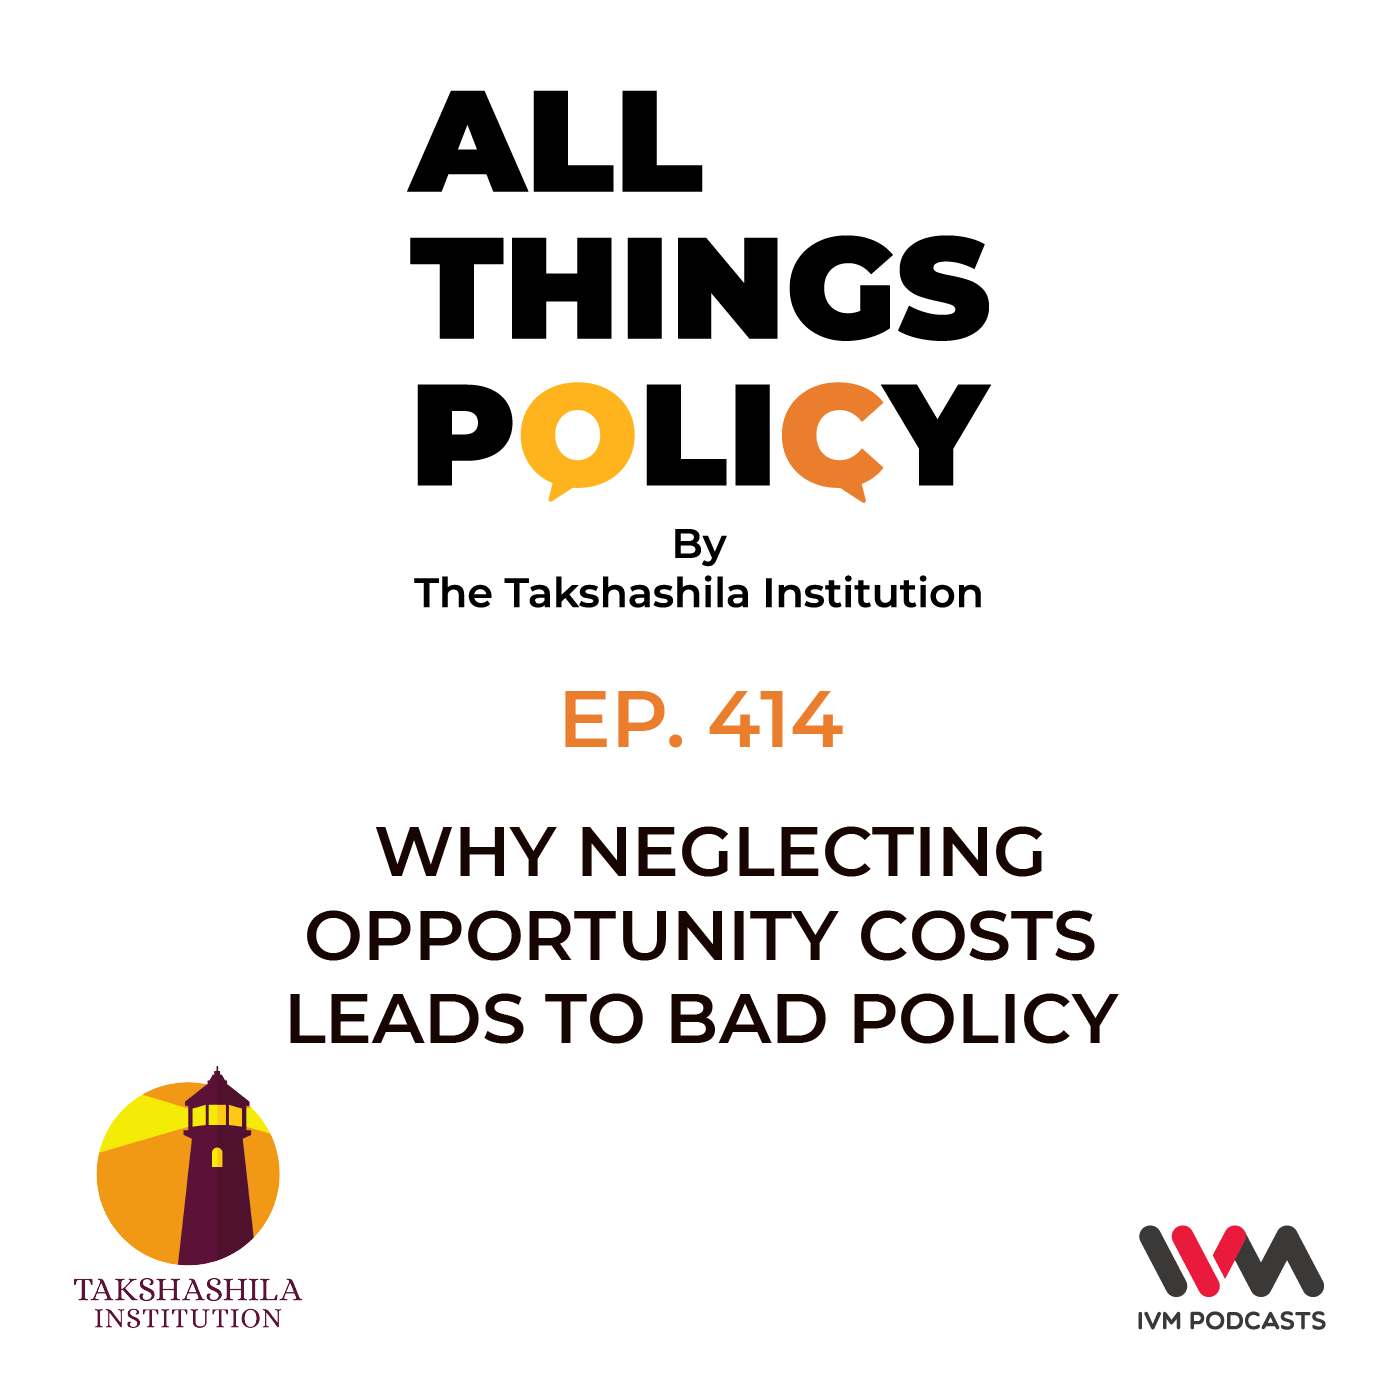 Ep. 414: Why Neglecting Opportunity Costs Leads to Bad Policy